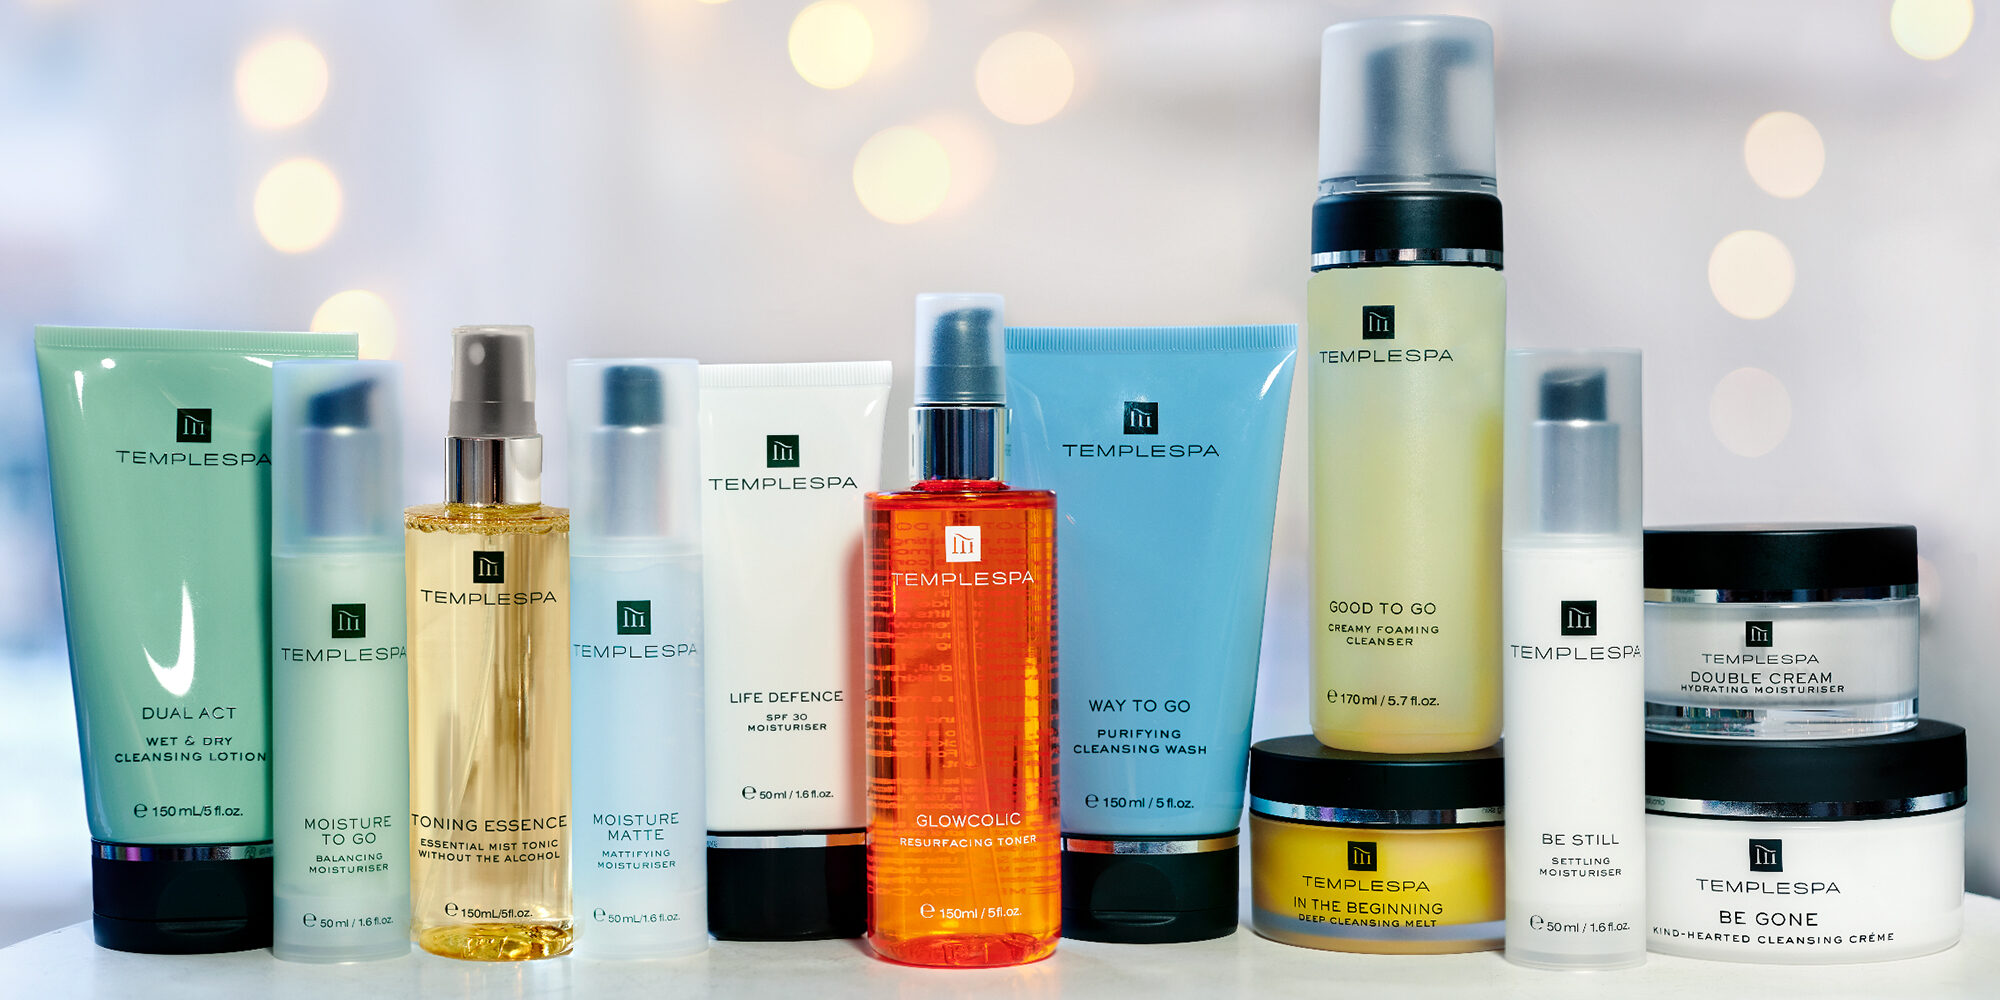 Temple Spa Has Leaned Into Its Direct-Sales Business To Flourish During The Pandemic